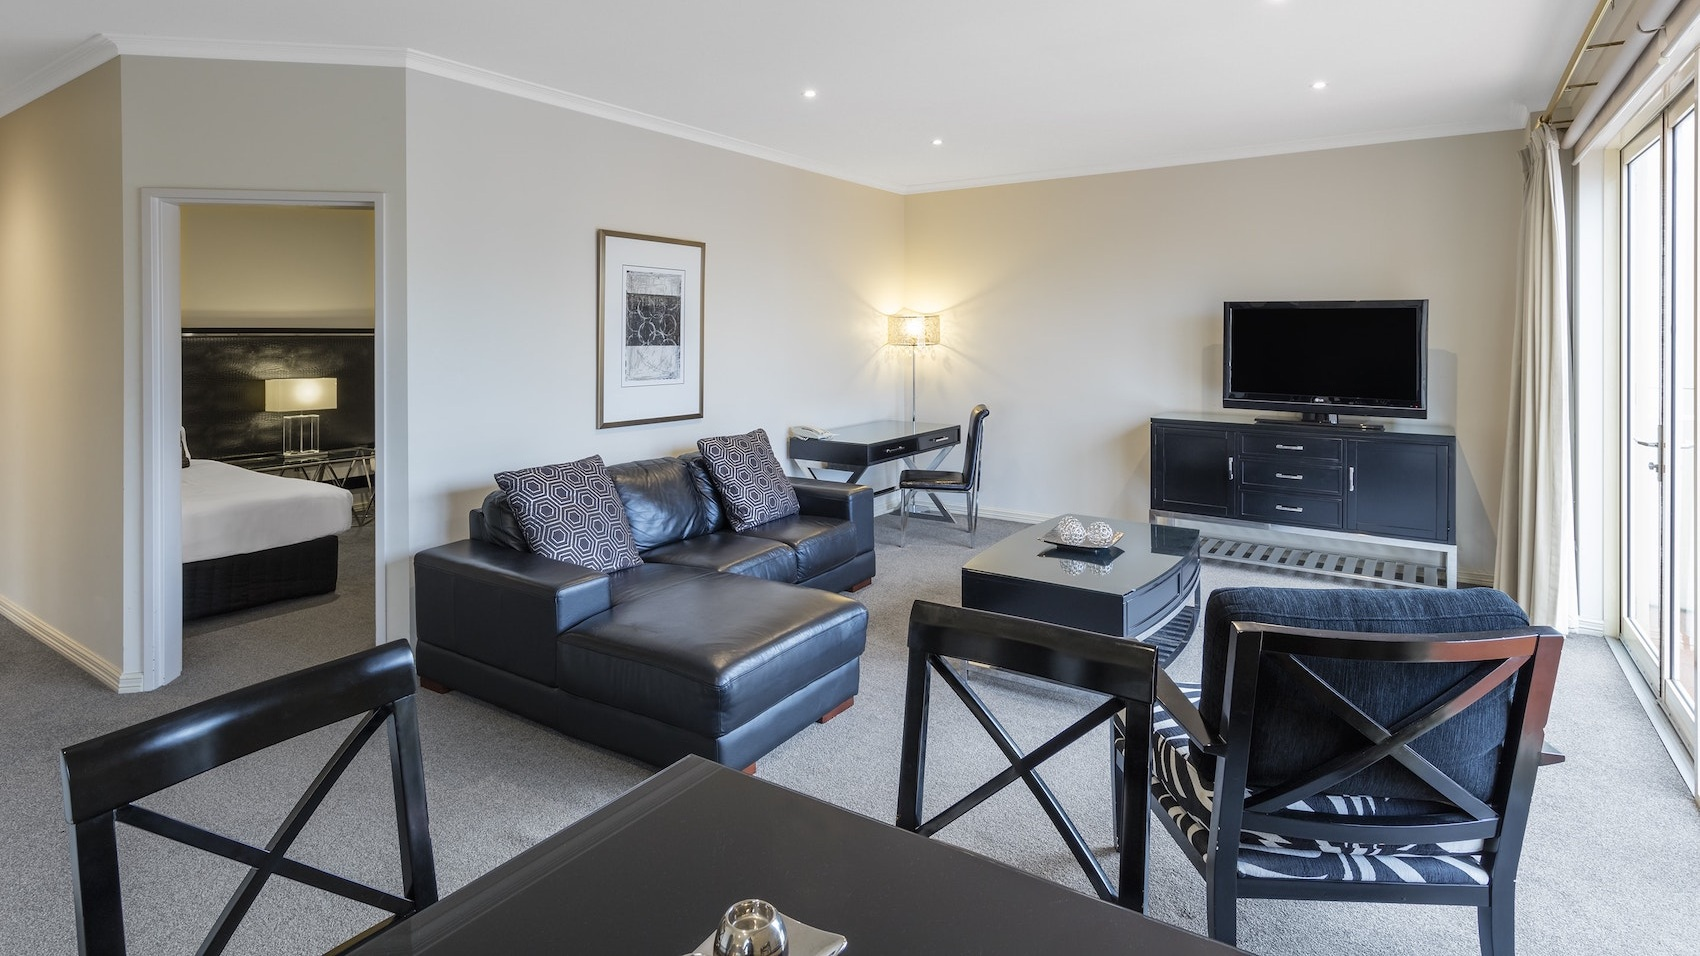 2 Bedroom Apartment - 1 KING BED & 2 SINGLE BEDS • MAX 4 GUESTSA fully self-contained apartment ideal for families or longer stays.